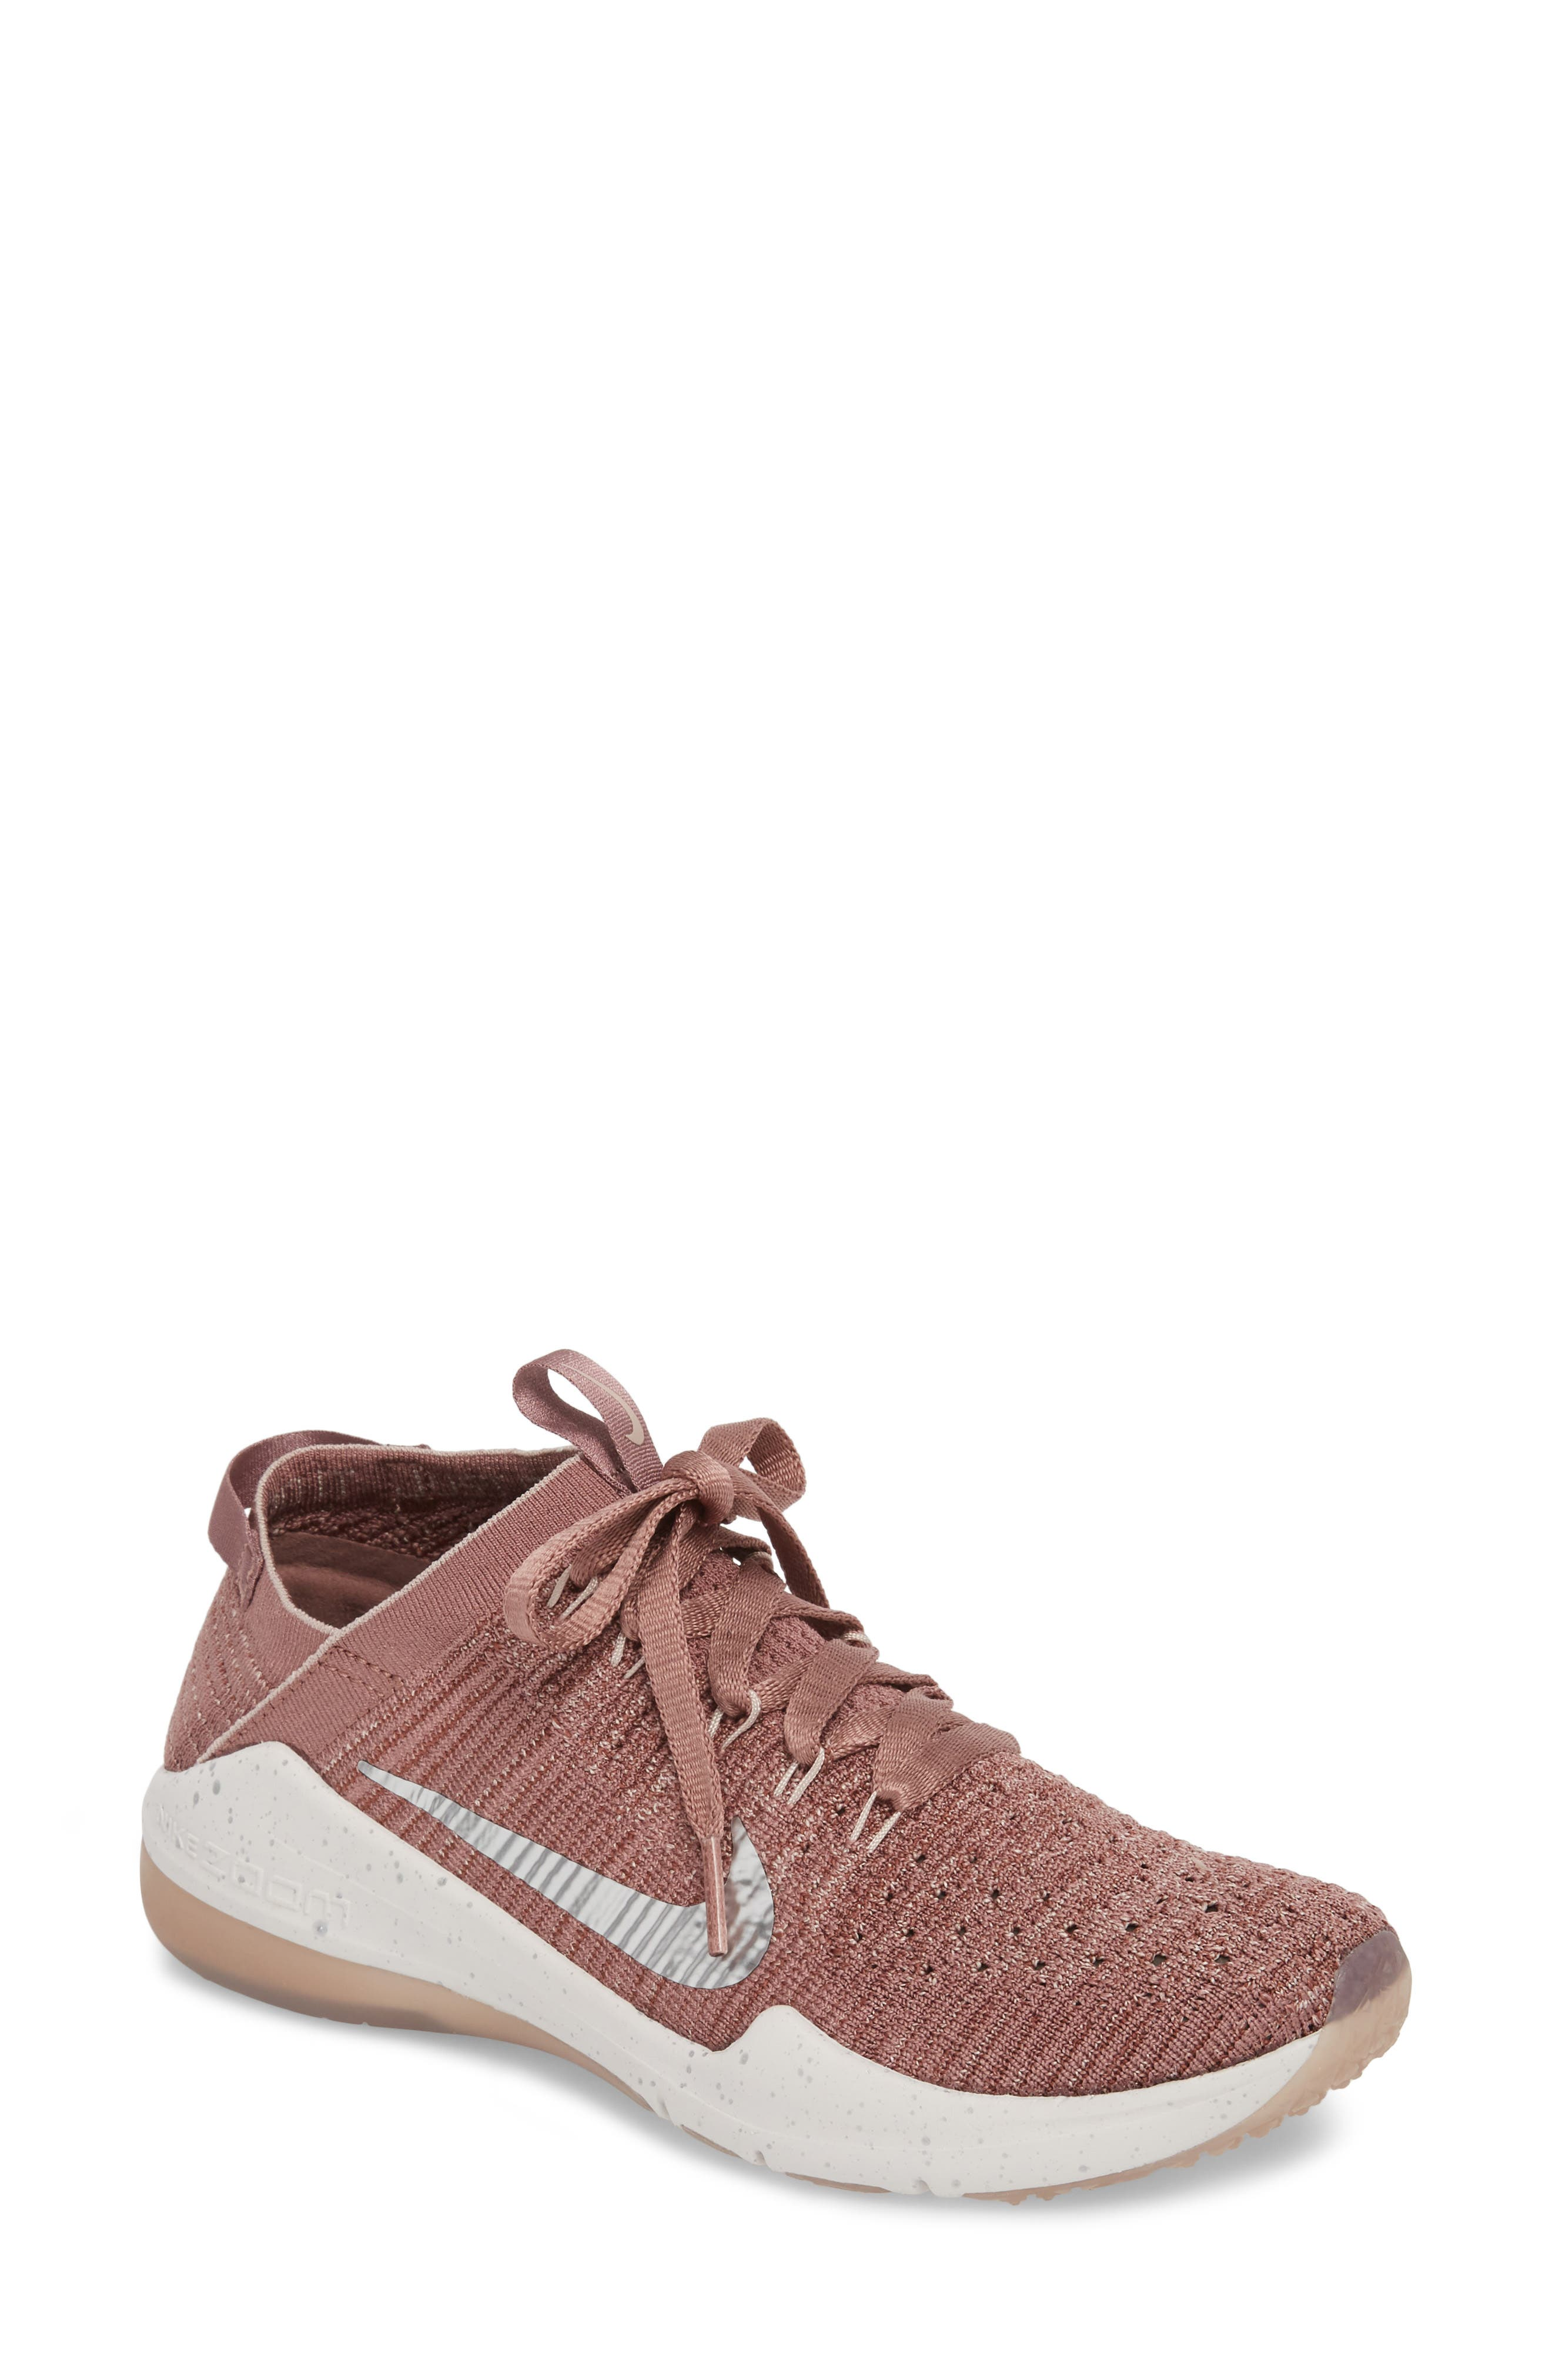 finest selection 2cf03 ef9d1 ... promo code for nike air zoom fearless flyknit 2 lm training shoe women  53c40 81bf8